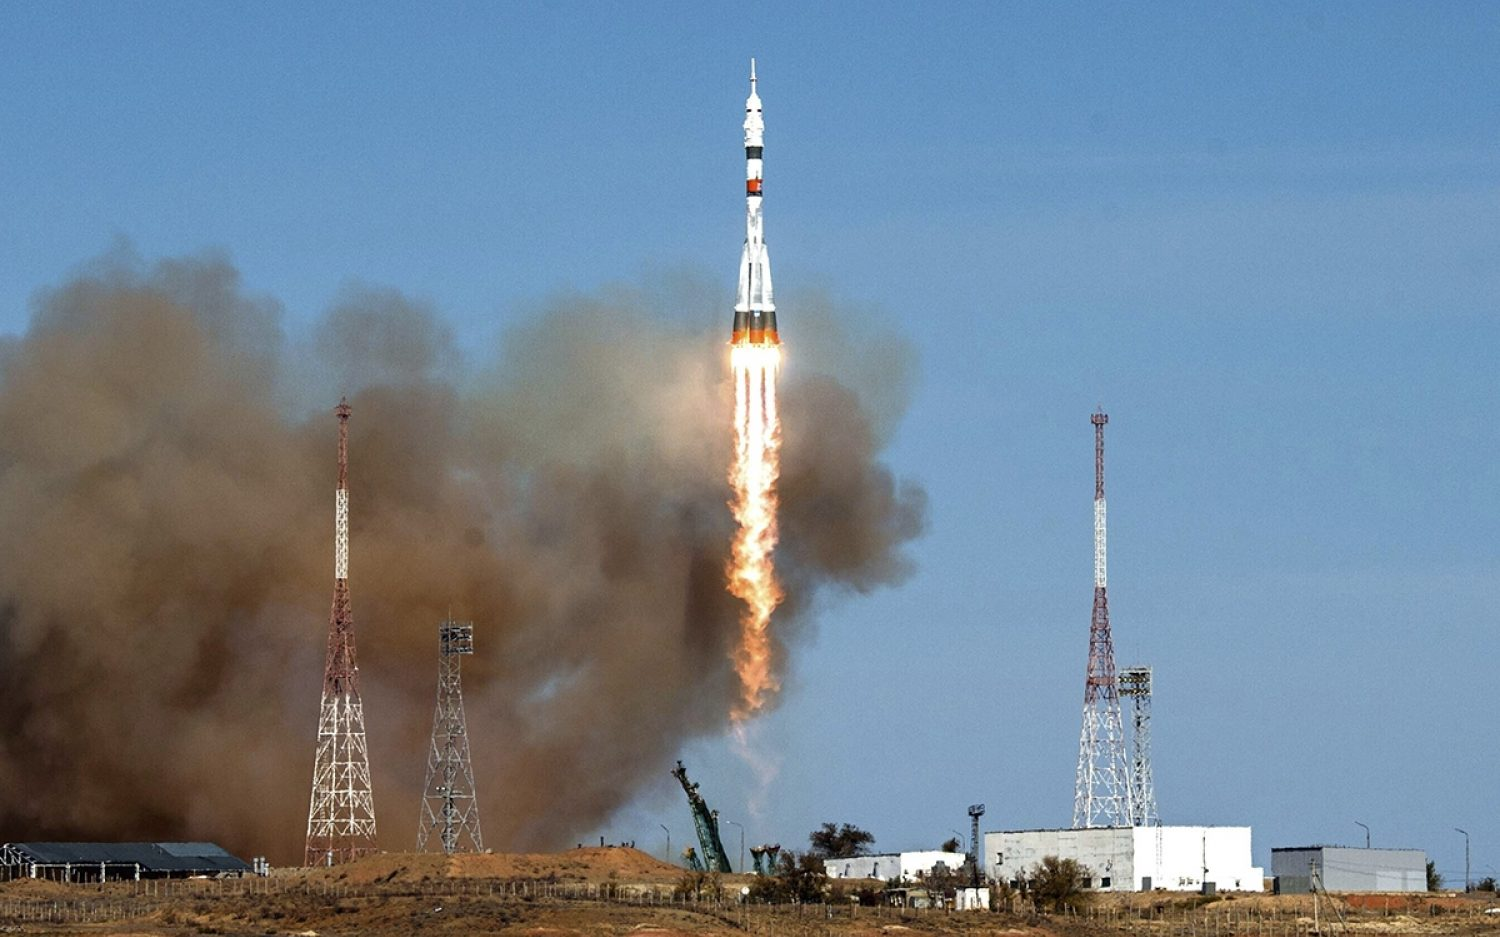 Crew blasts off for space station